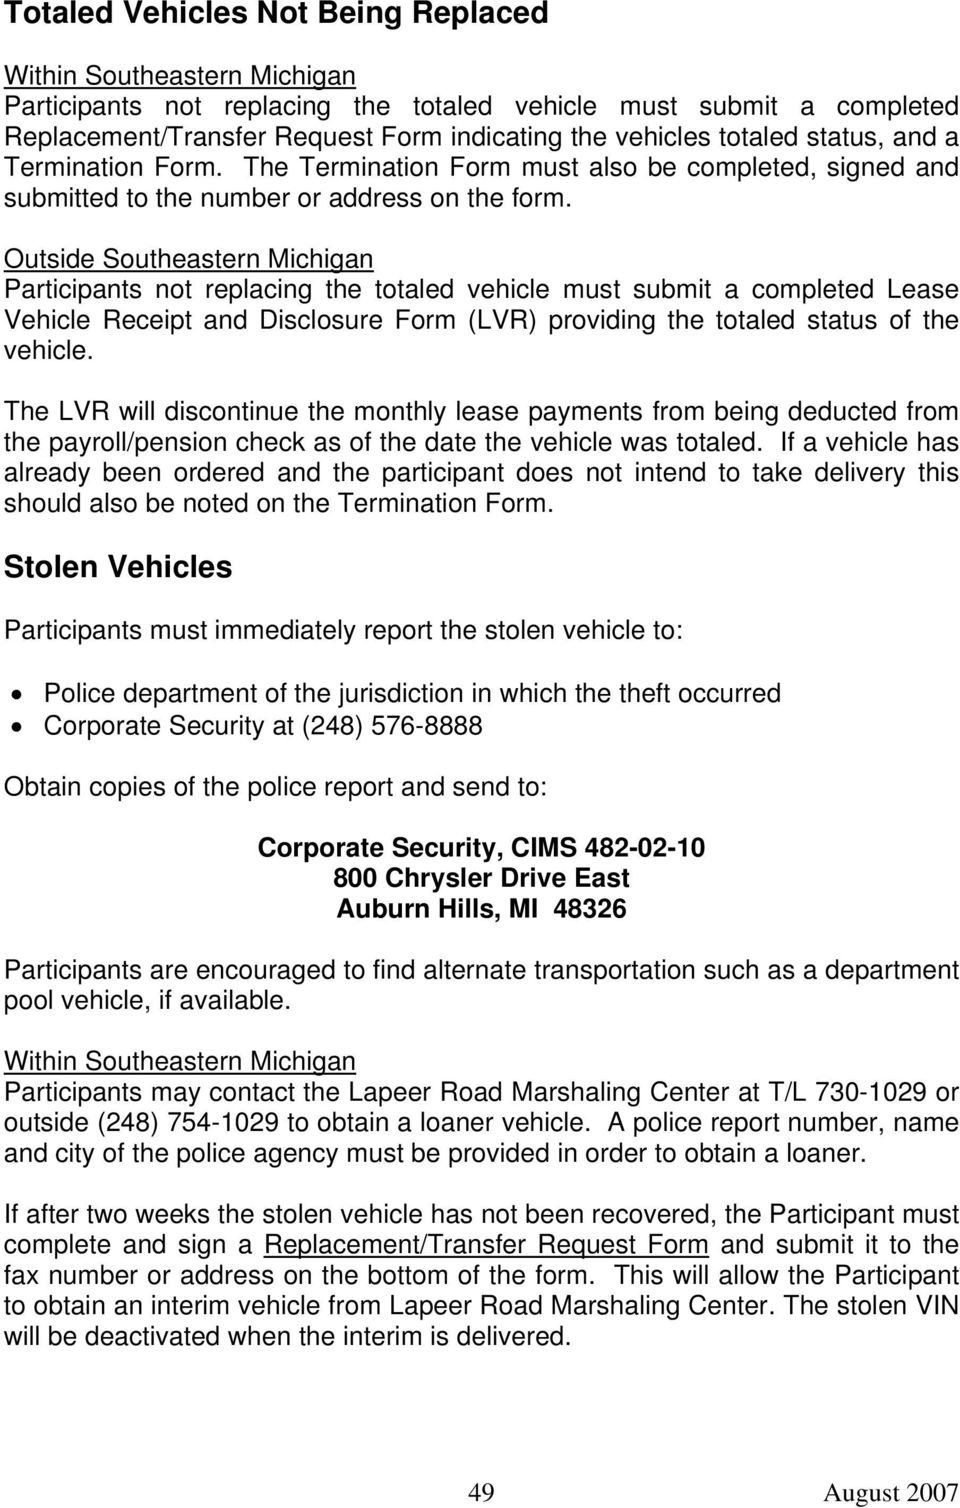 Outside Southeastern Michigan Participants not replacing the totaled vehicle must submit a completed Lease Vehicle Receipt and Disclosure Form (LVR) providing the totaled status of the vehicle.